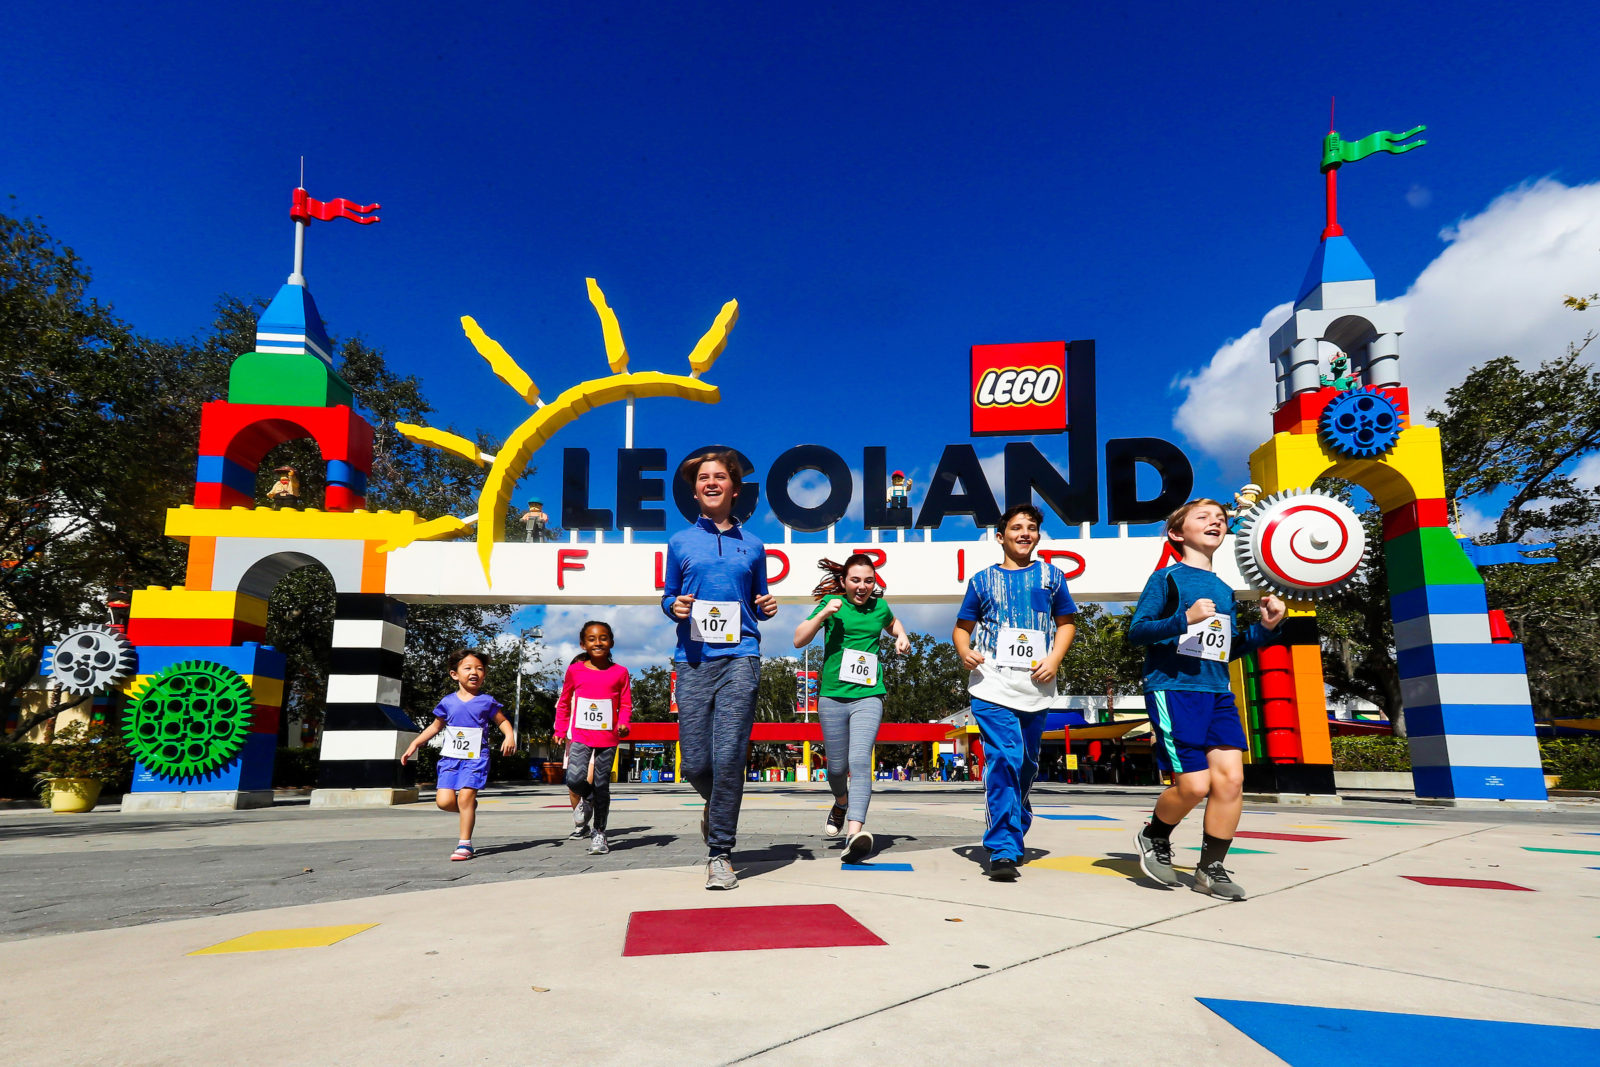 LEGOLAND Florida Resort Brick Dash 5K Brick or Treat